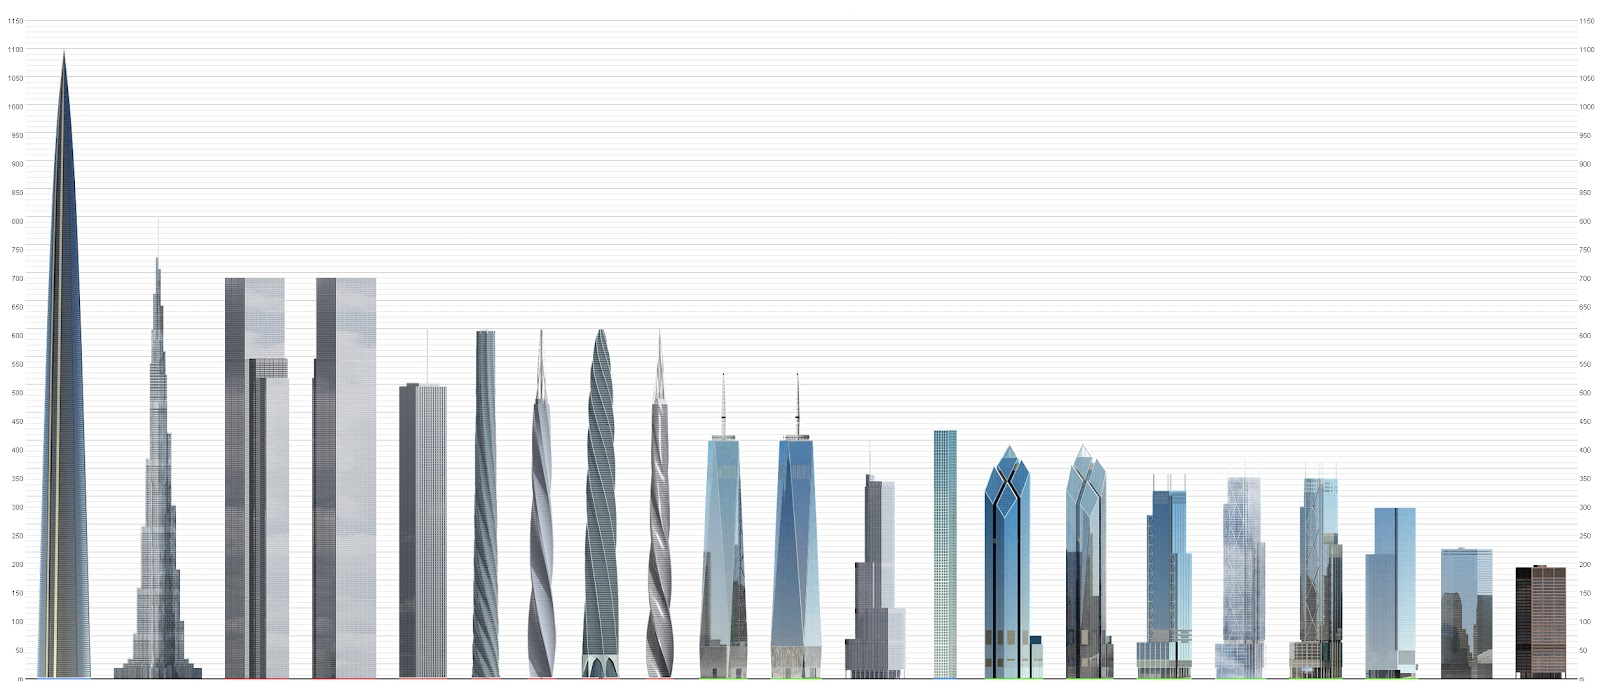 Tallest Building in the World